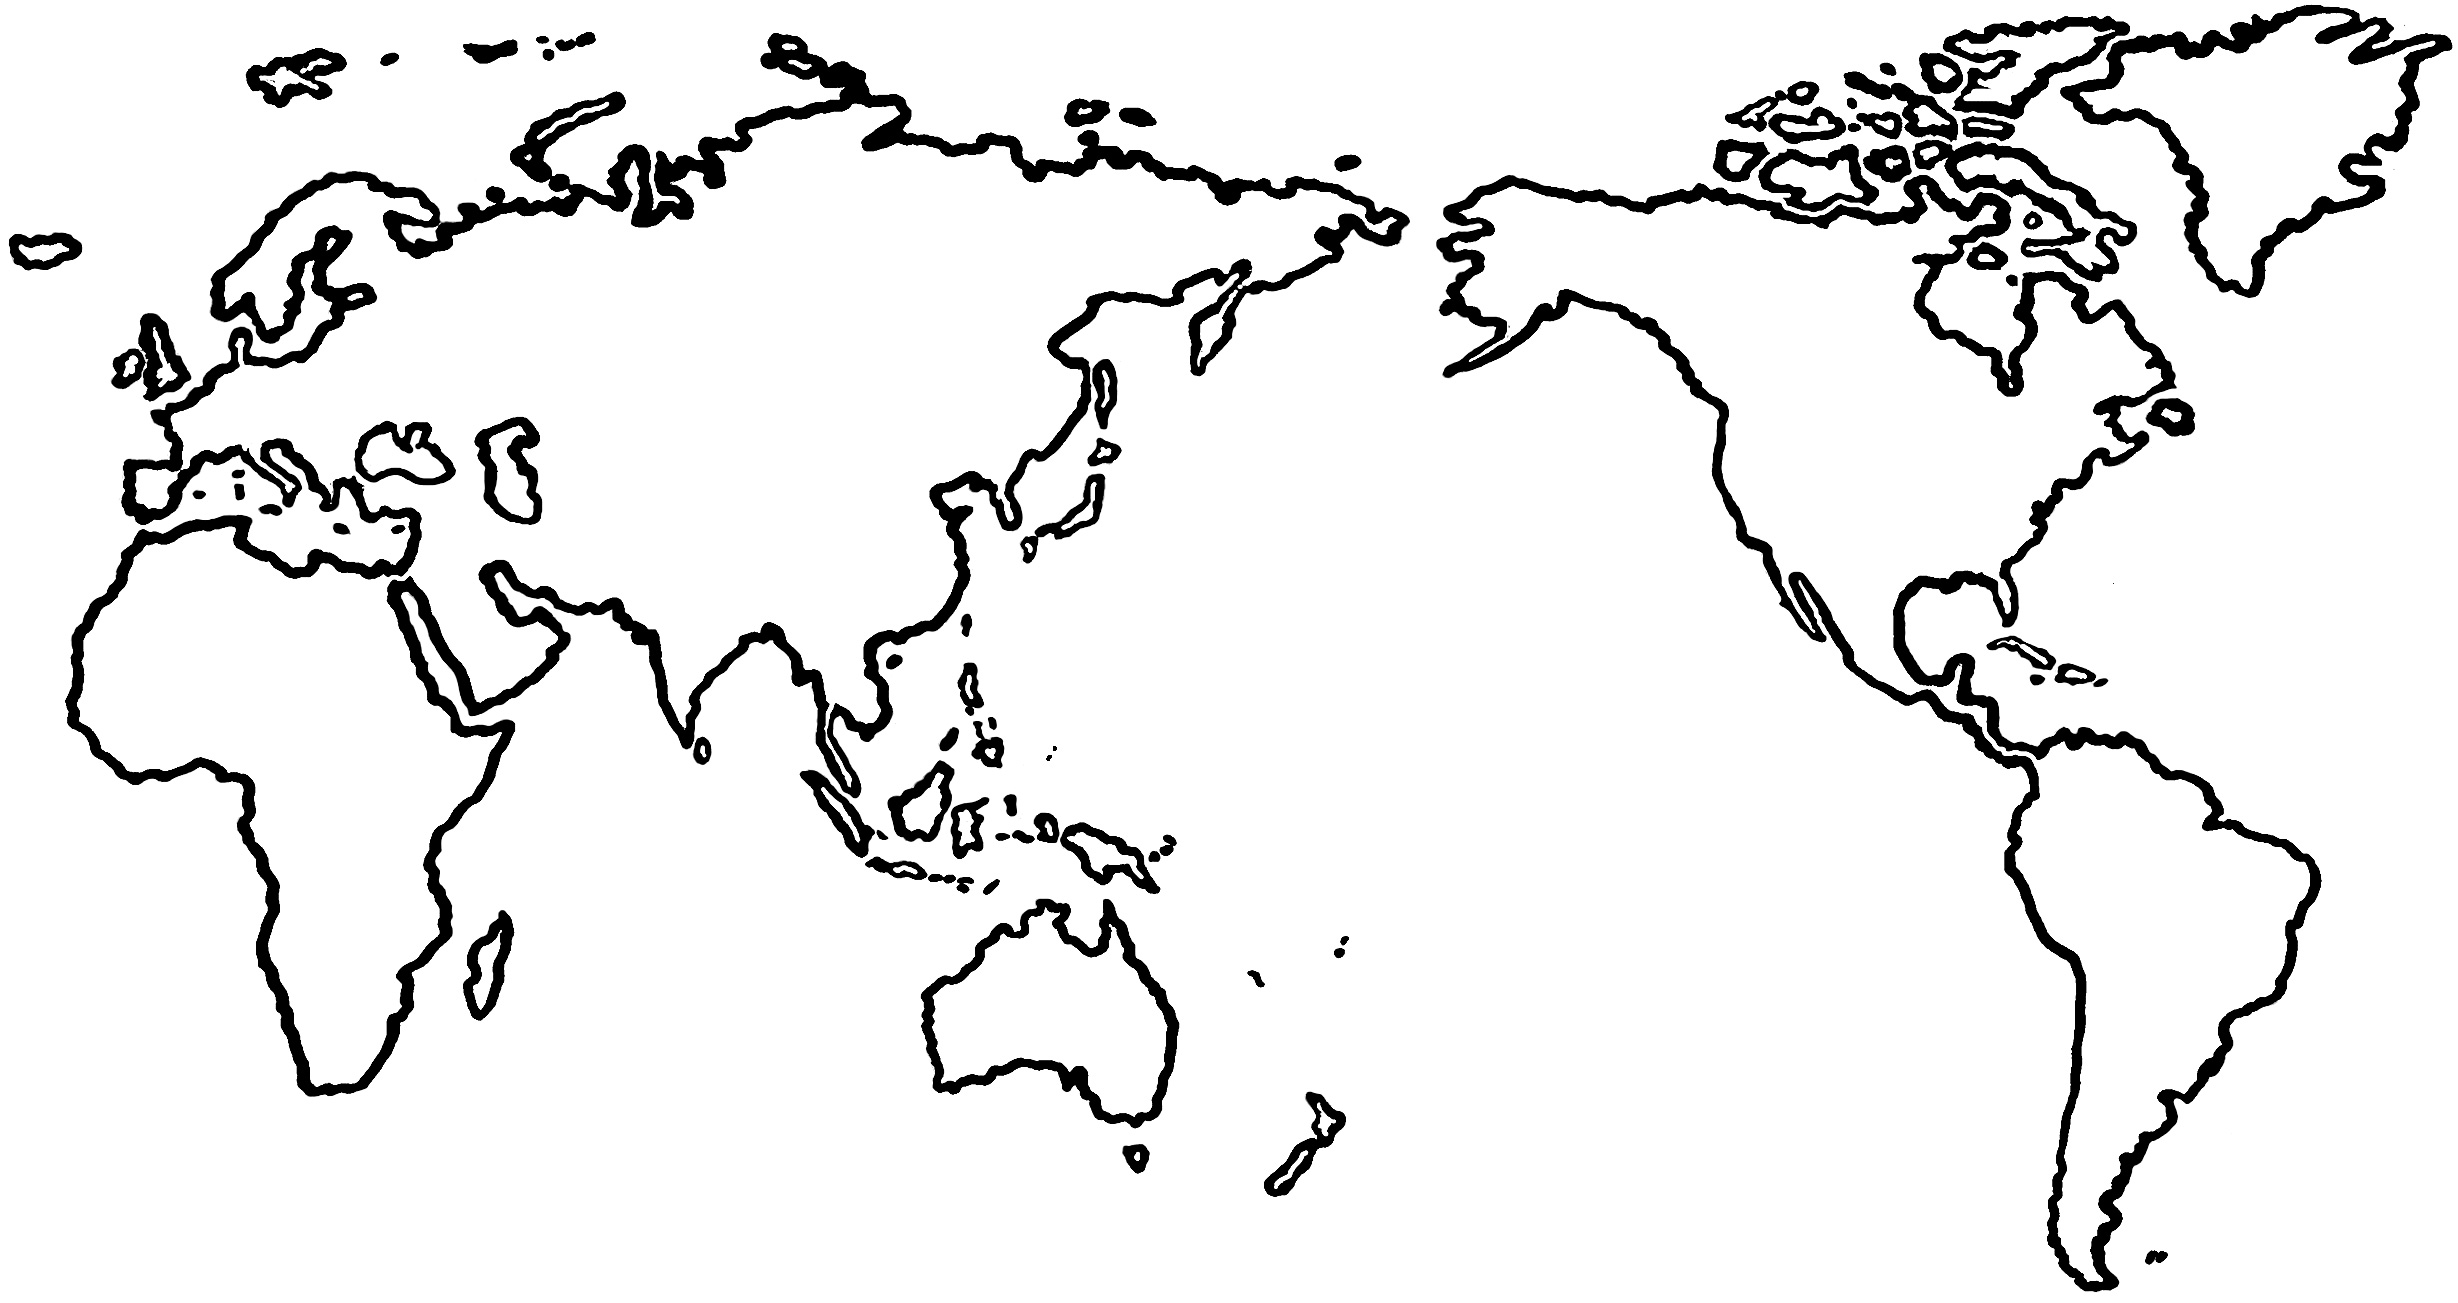 Blank world map template gidiyedformapolitica blank world map template gumiabroncs